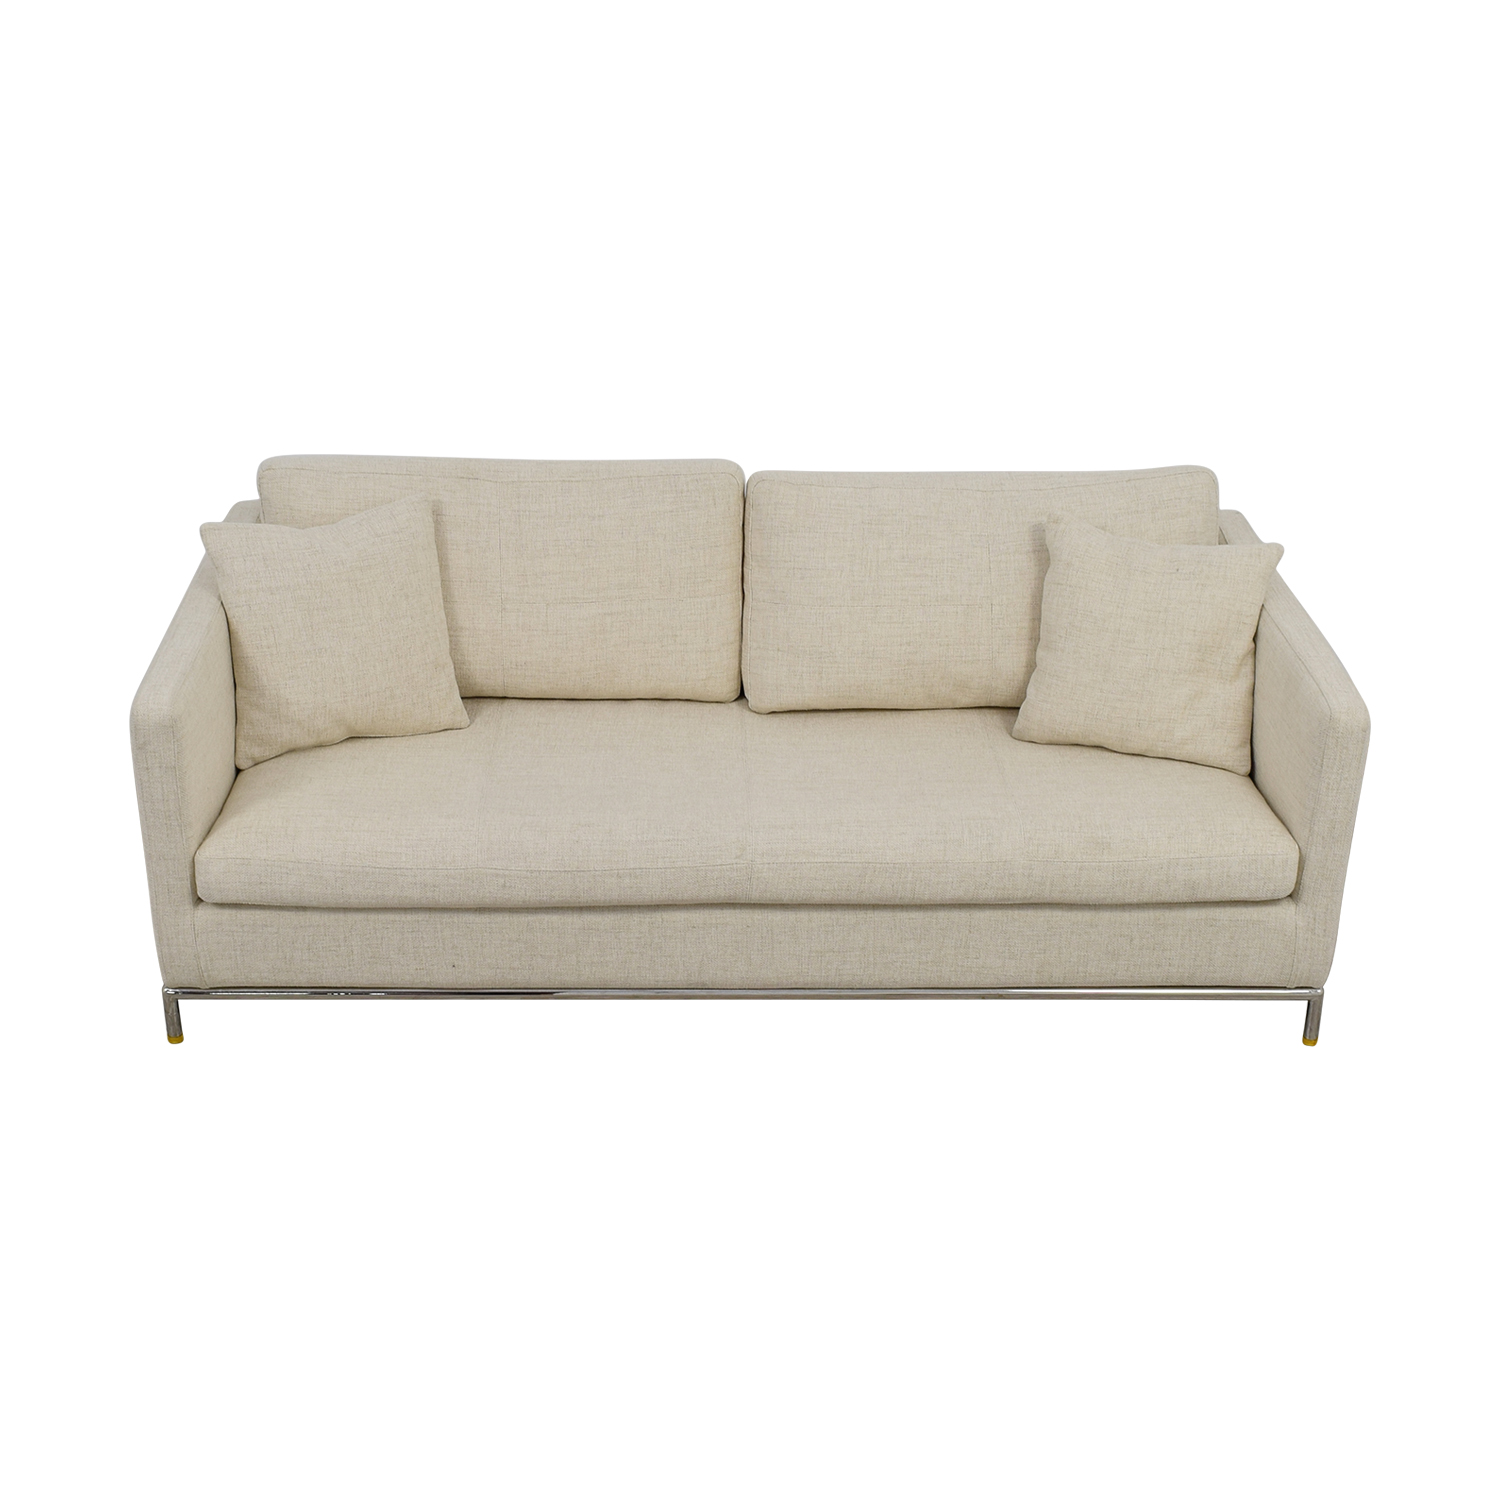 SohoConcept Istanbul Single Cushion Beige Sofa / Sofas